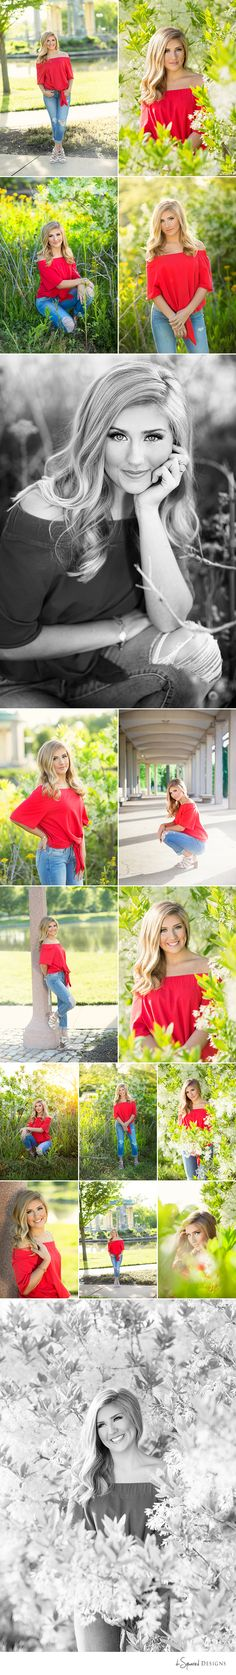 Grace | St. Louis, MO Senior Photography | dsqdesigns.com